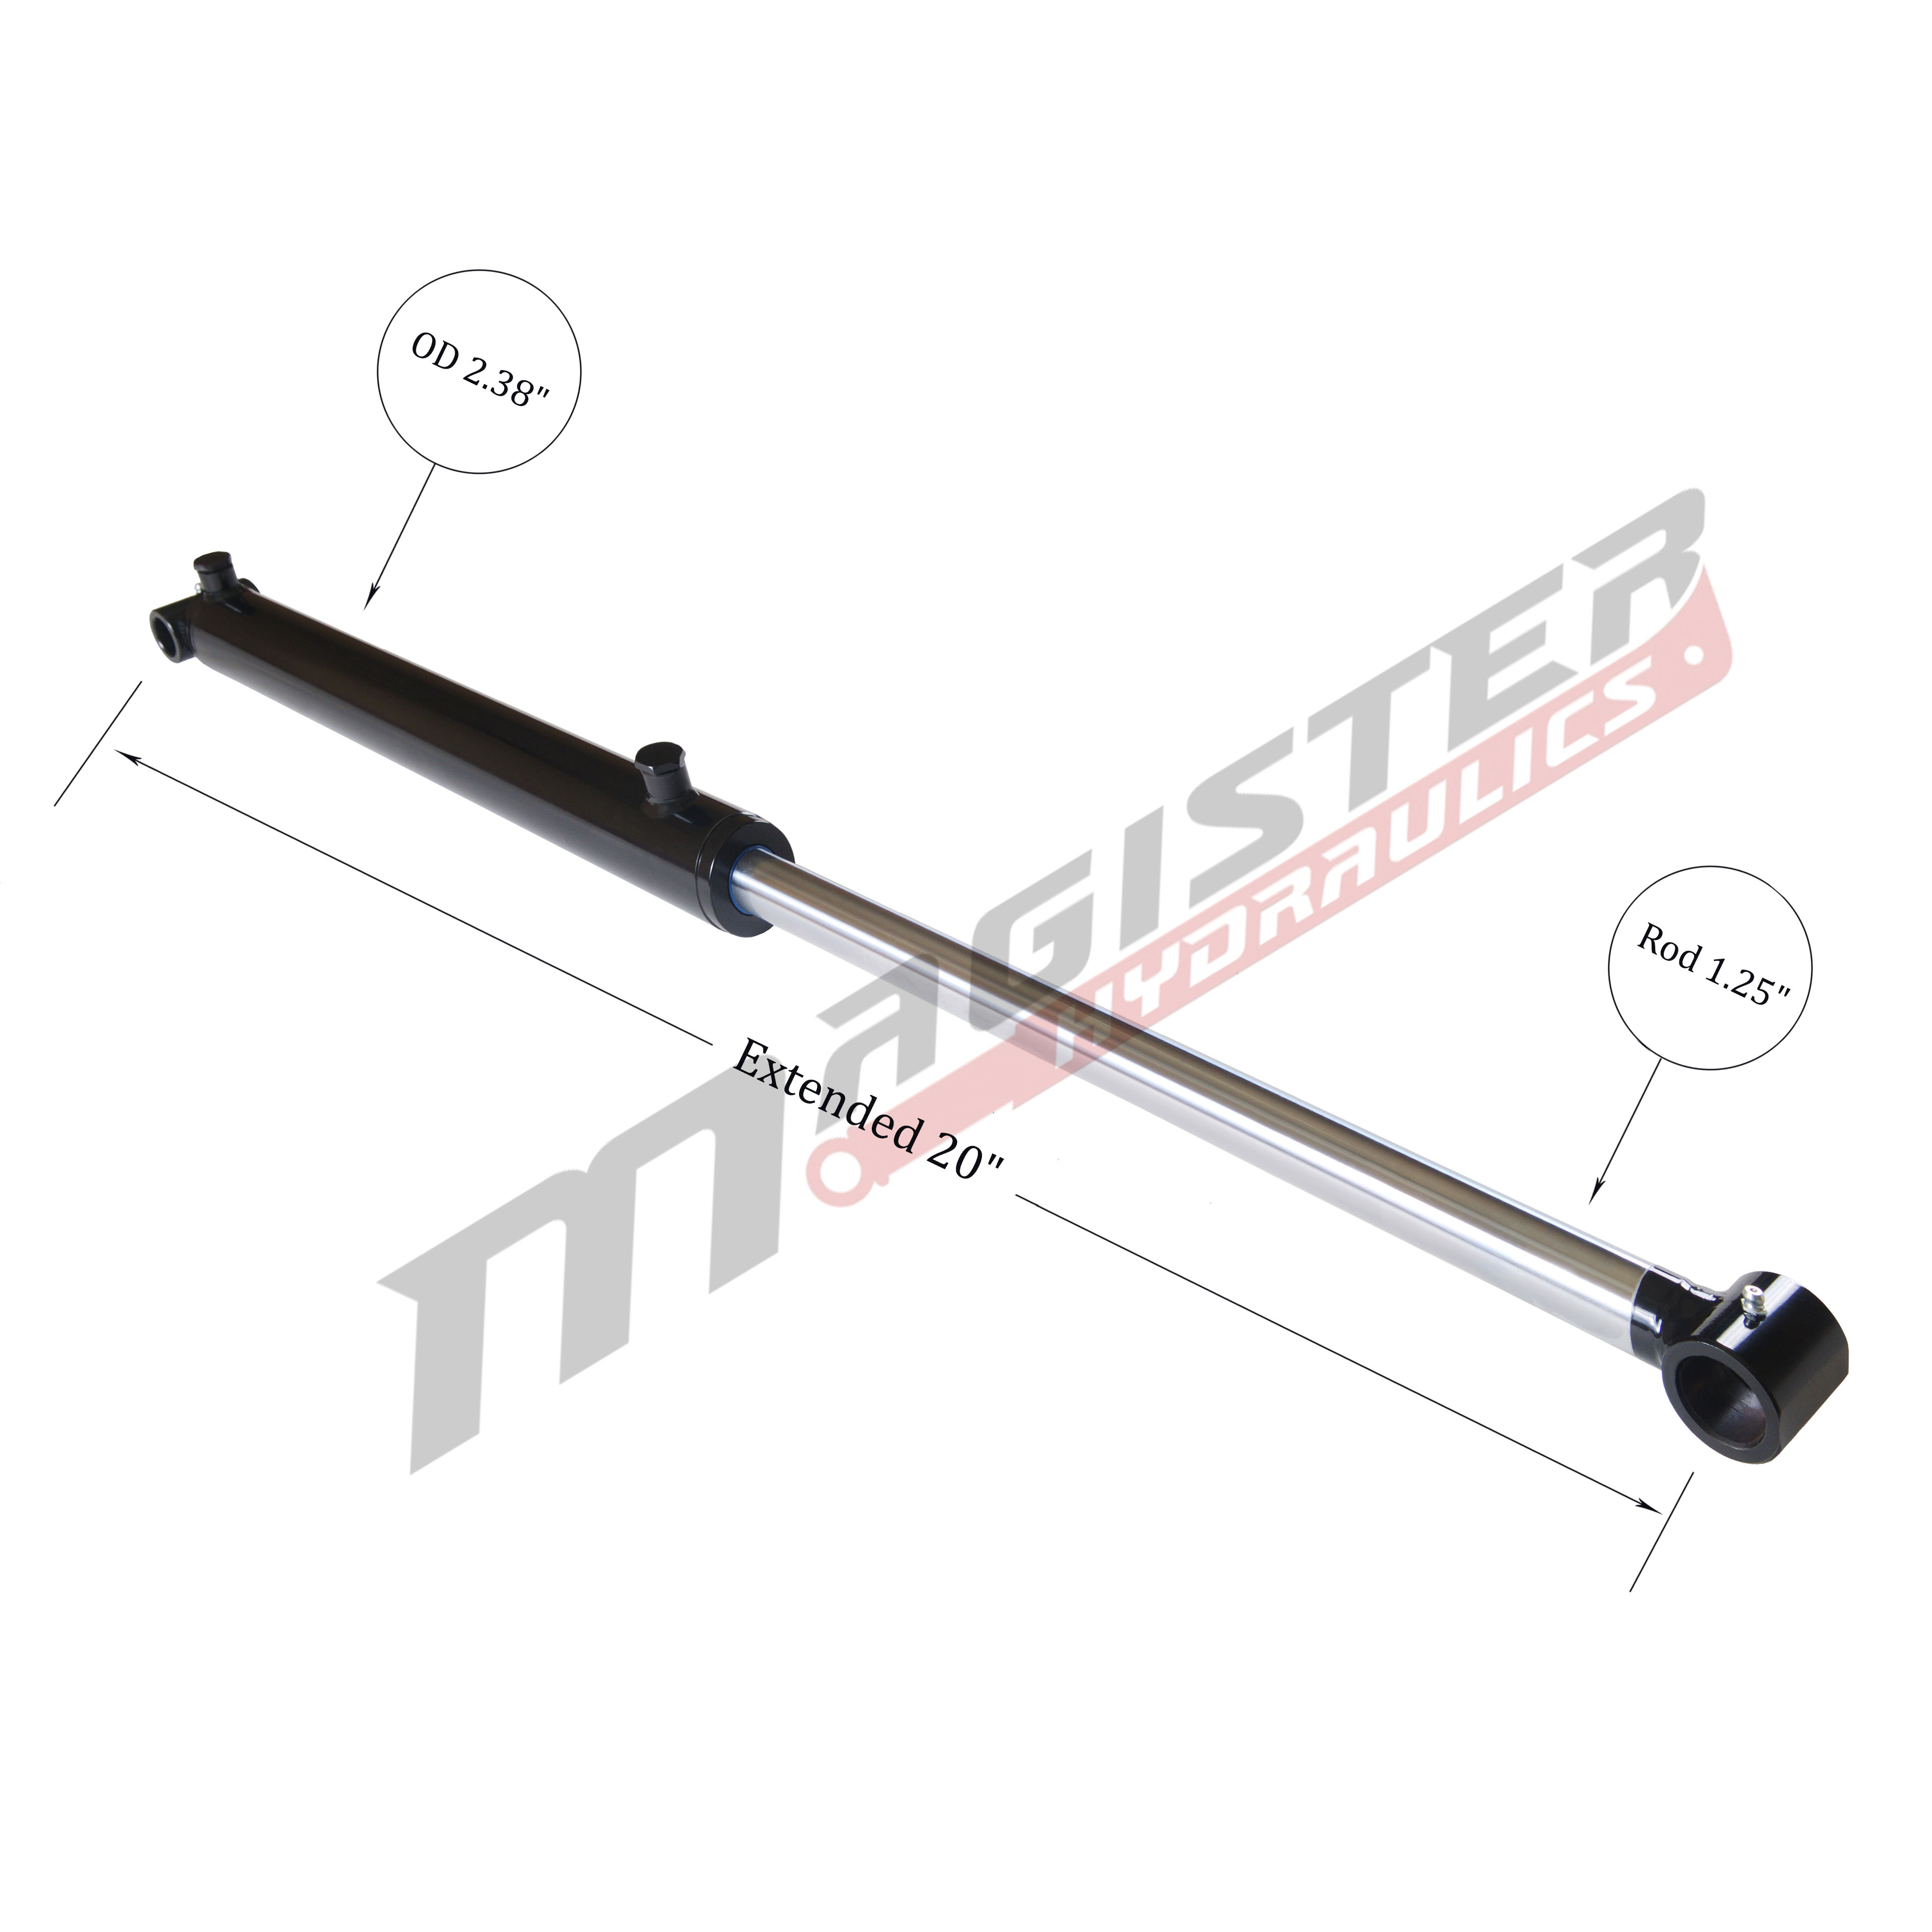 2 bore x 6 stroke hydraulic cylinder, welded cross tube double acting cylinder | Magister Hydraulics